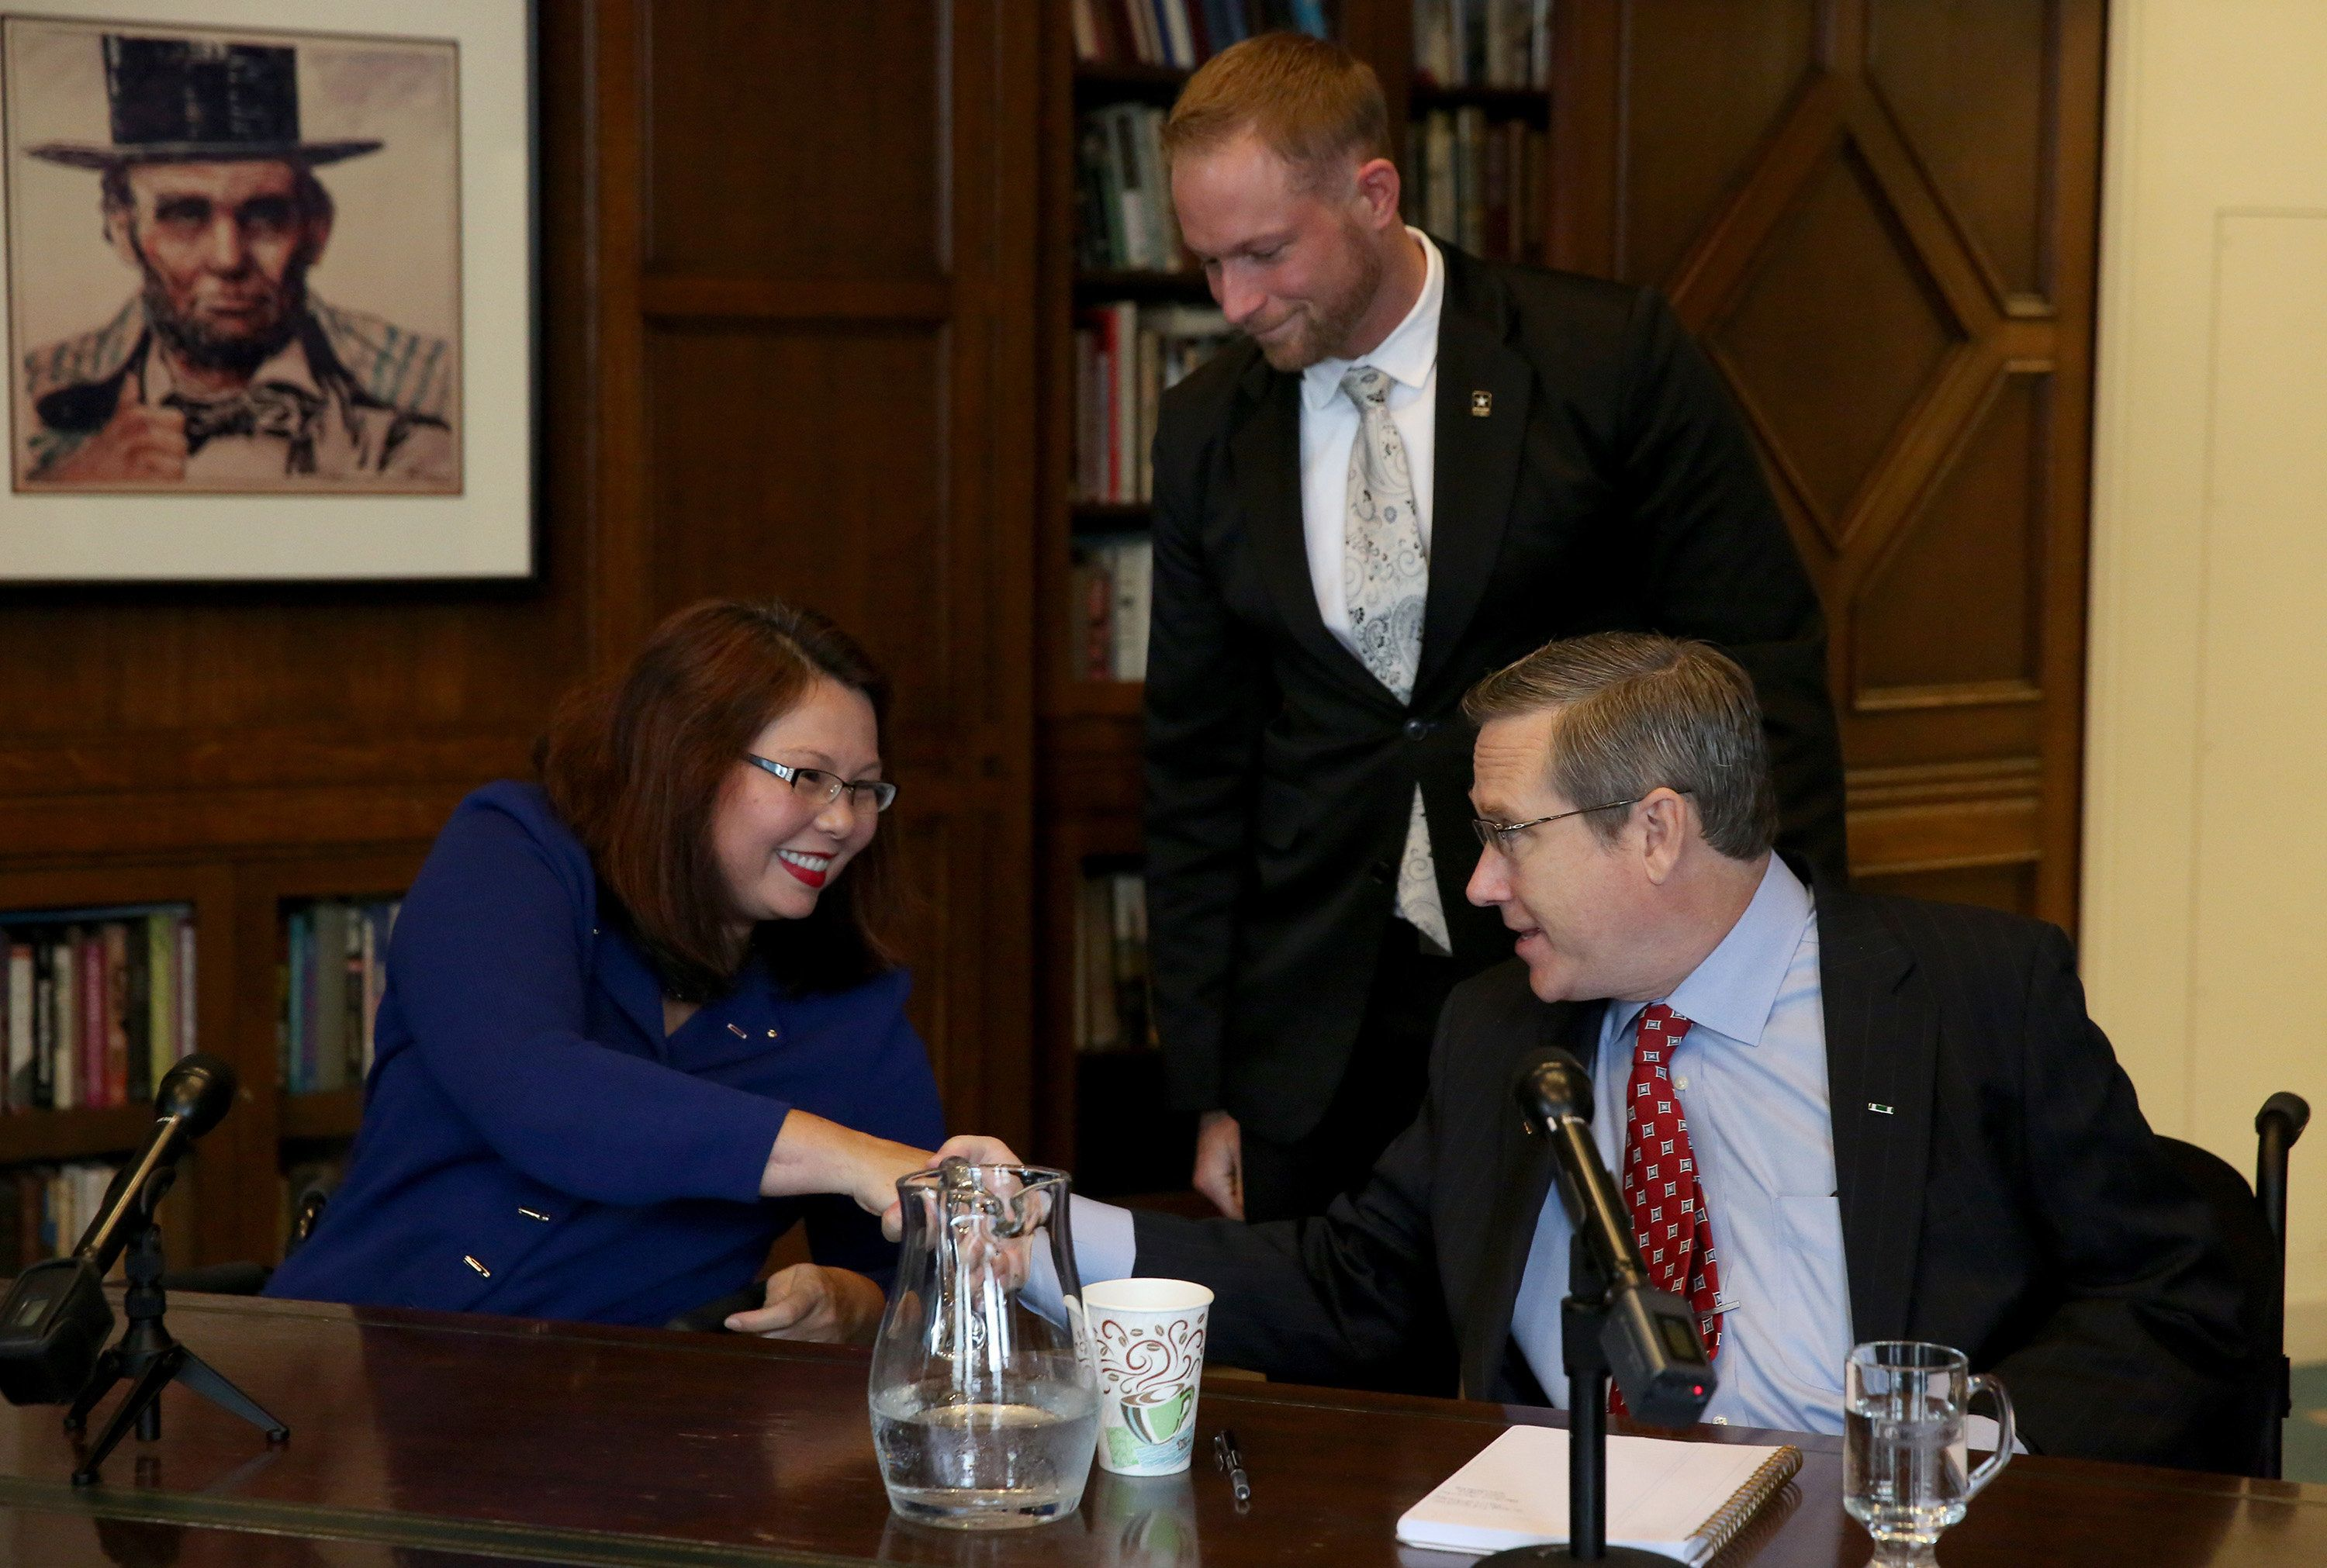 Rep. Tammy Duckworth and Sen. Mark Kirk shake hands after their debate on Monday Oct. 3, 3016 in the Chicago Tribune Editorial Board room. (Nancy Stone/Chicago Tribune/TNS via Getty Images)